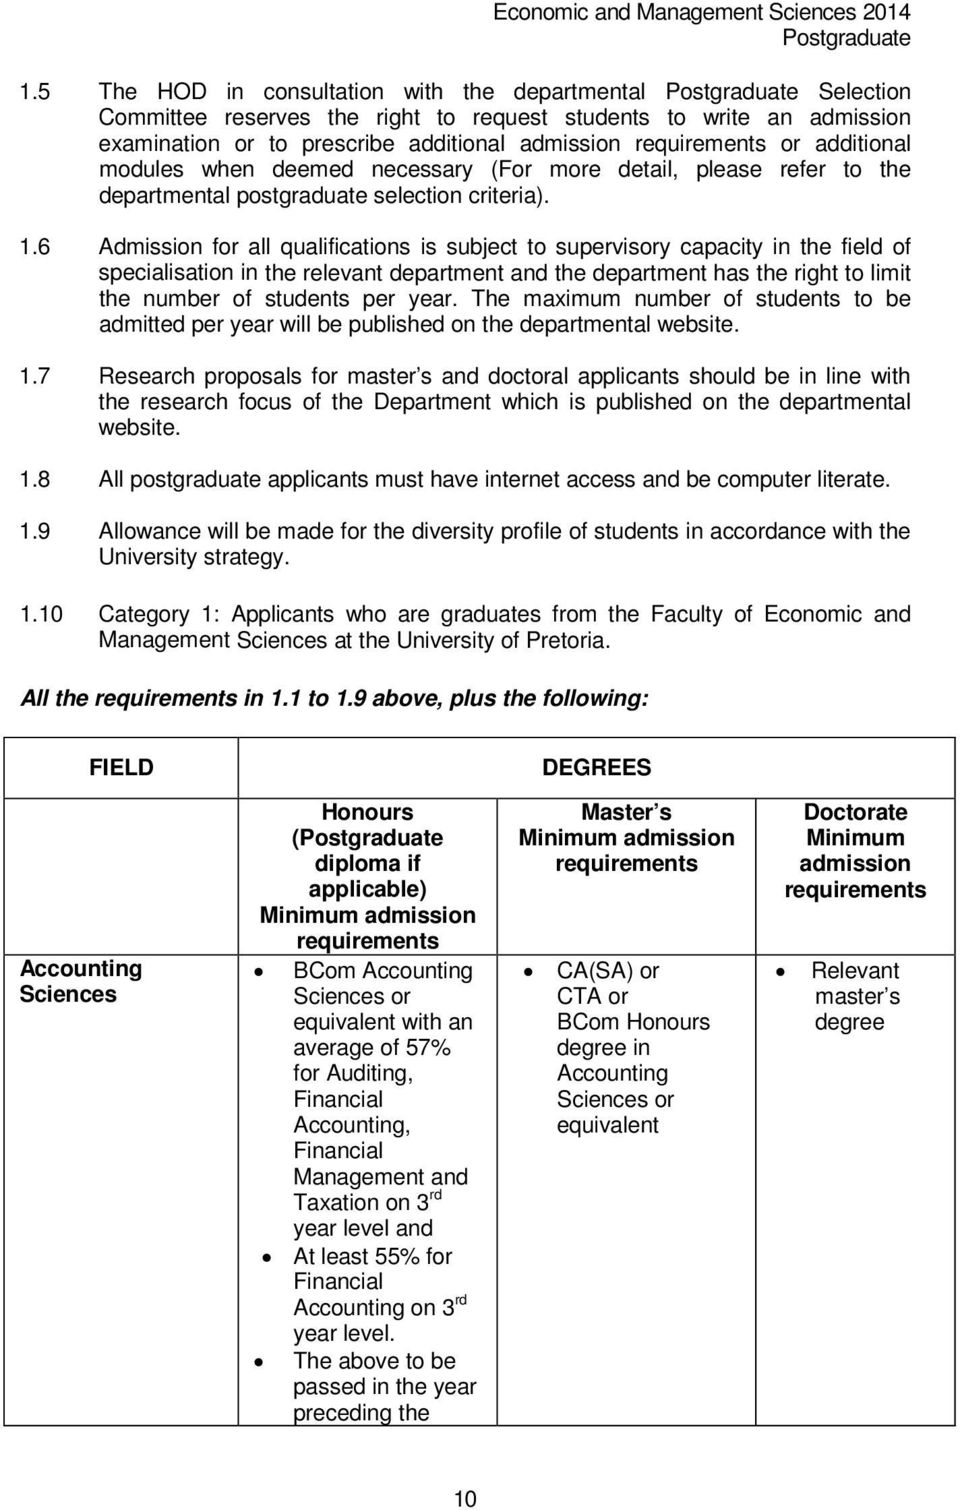 6 Admission for all qualifications is subject to supervisory capacity in the field of specialisation in the relevant department and the department has the right to limit the number of students per